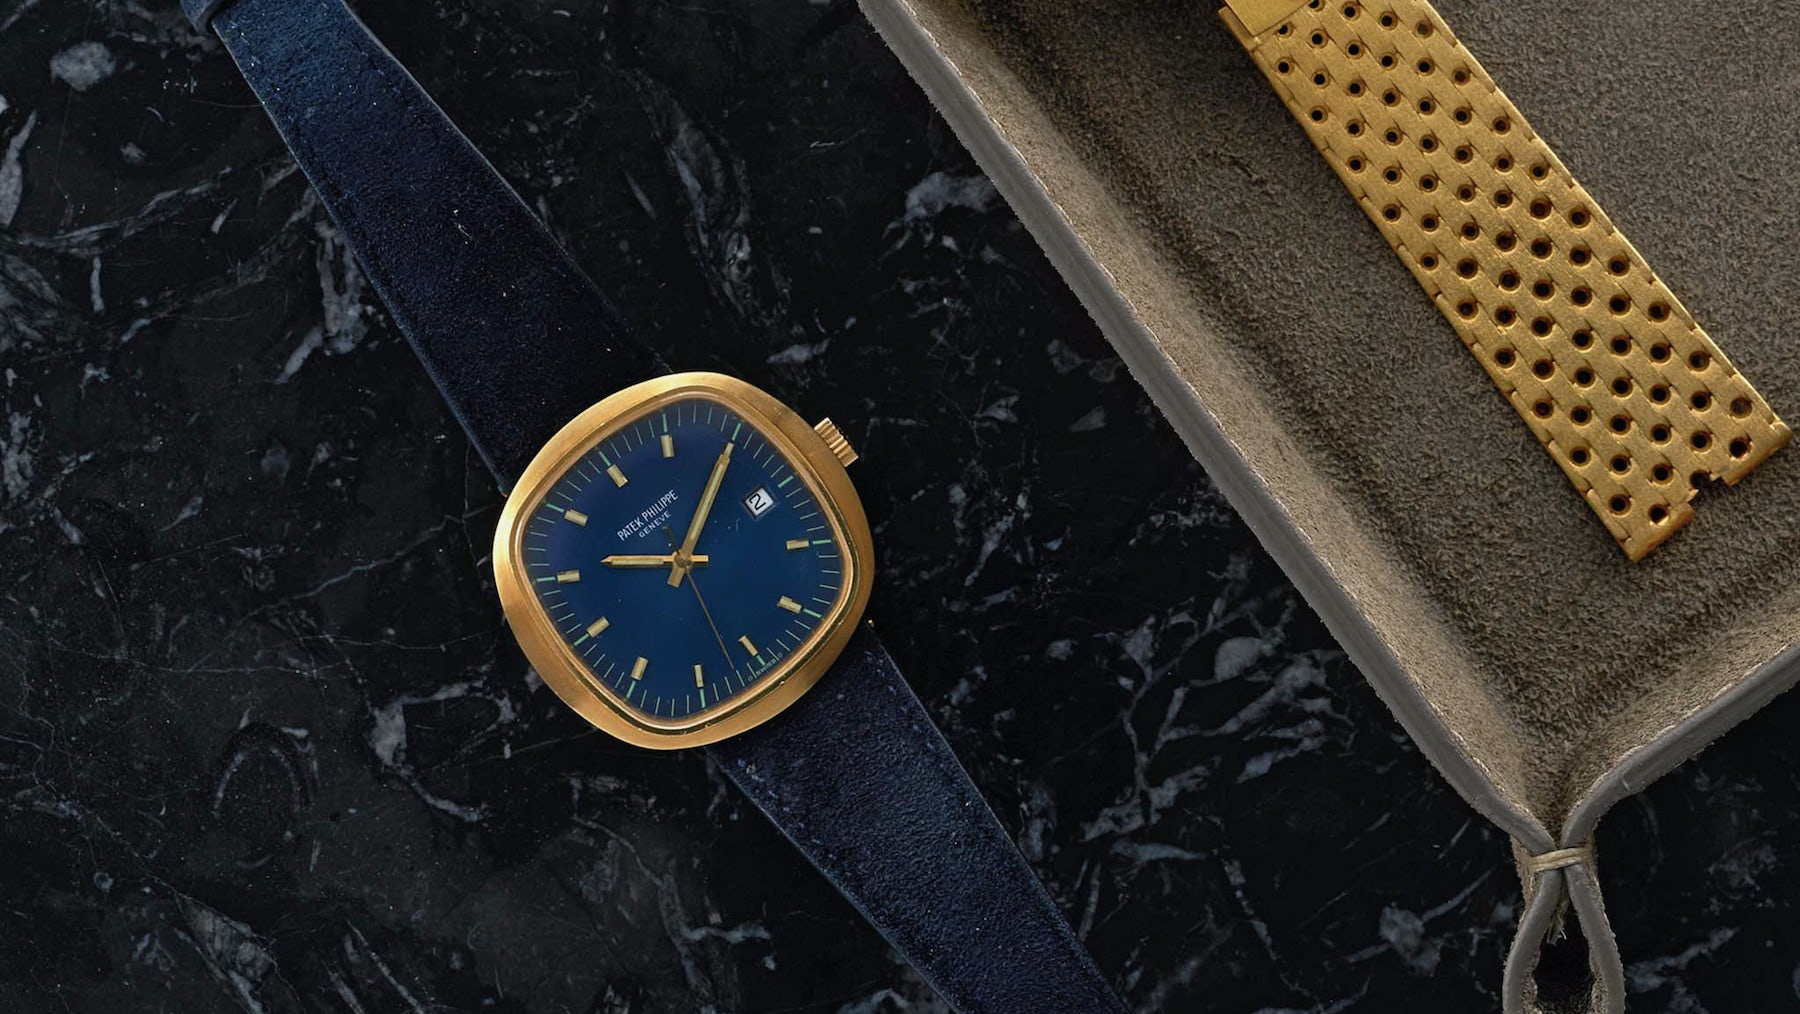 A vintage 1970s Patek Philippe watch | Source: Shop.Hodinkee.com